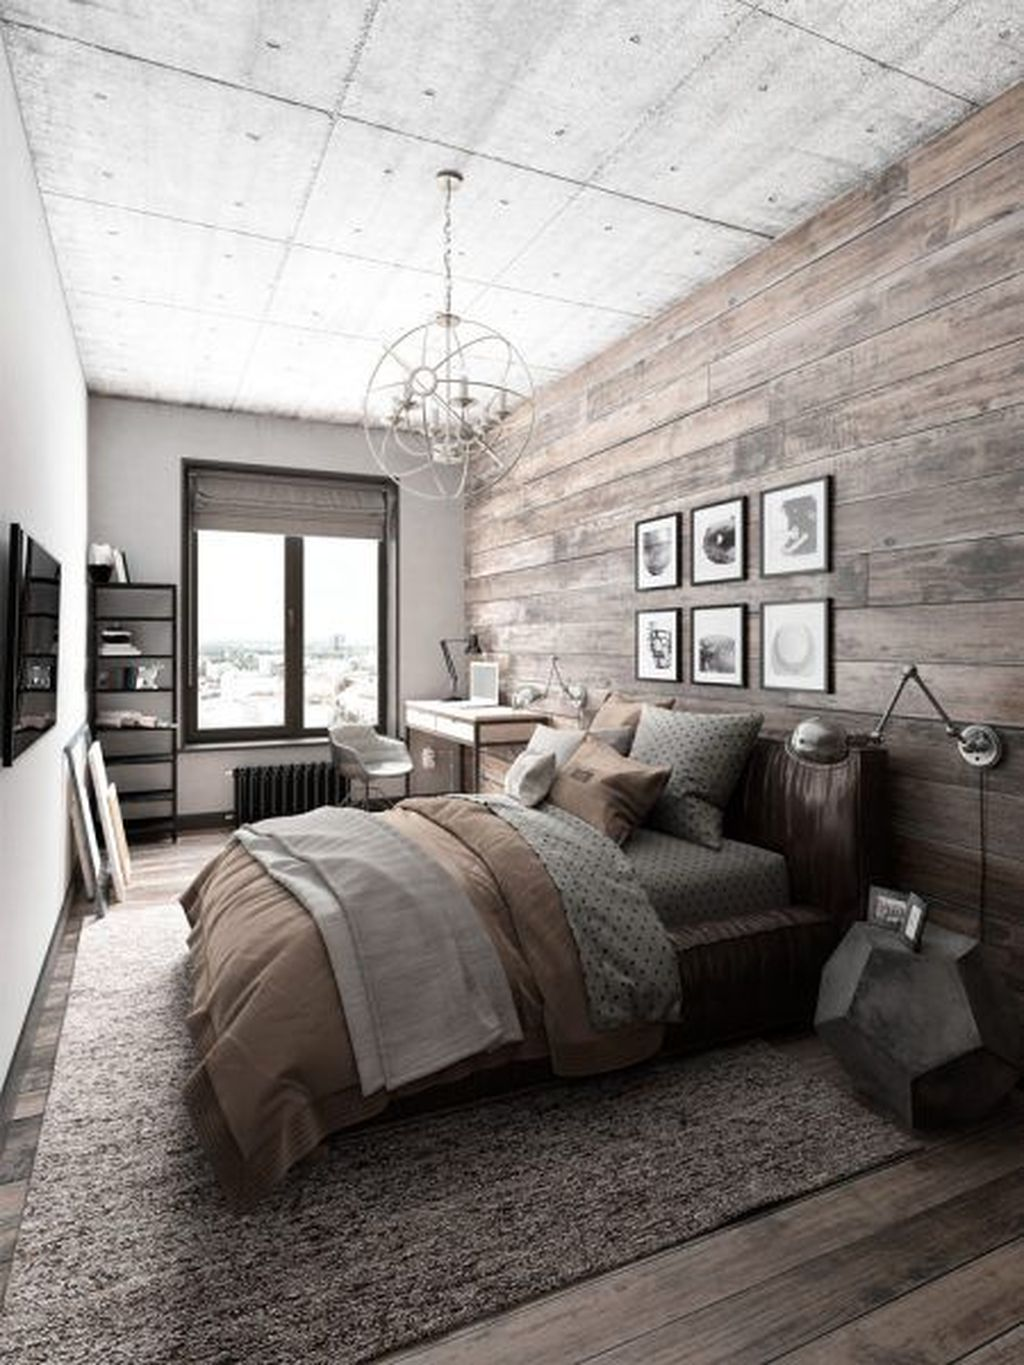 The Best Small Master Bedroom Design Ideas WIth Farmhouse Style 14